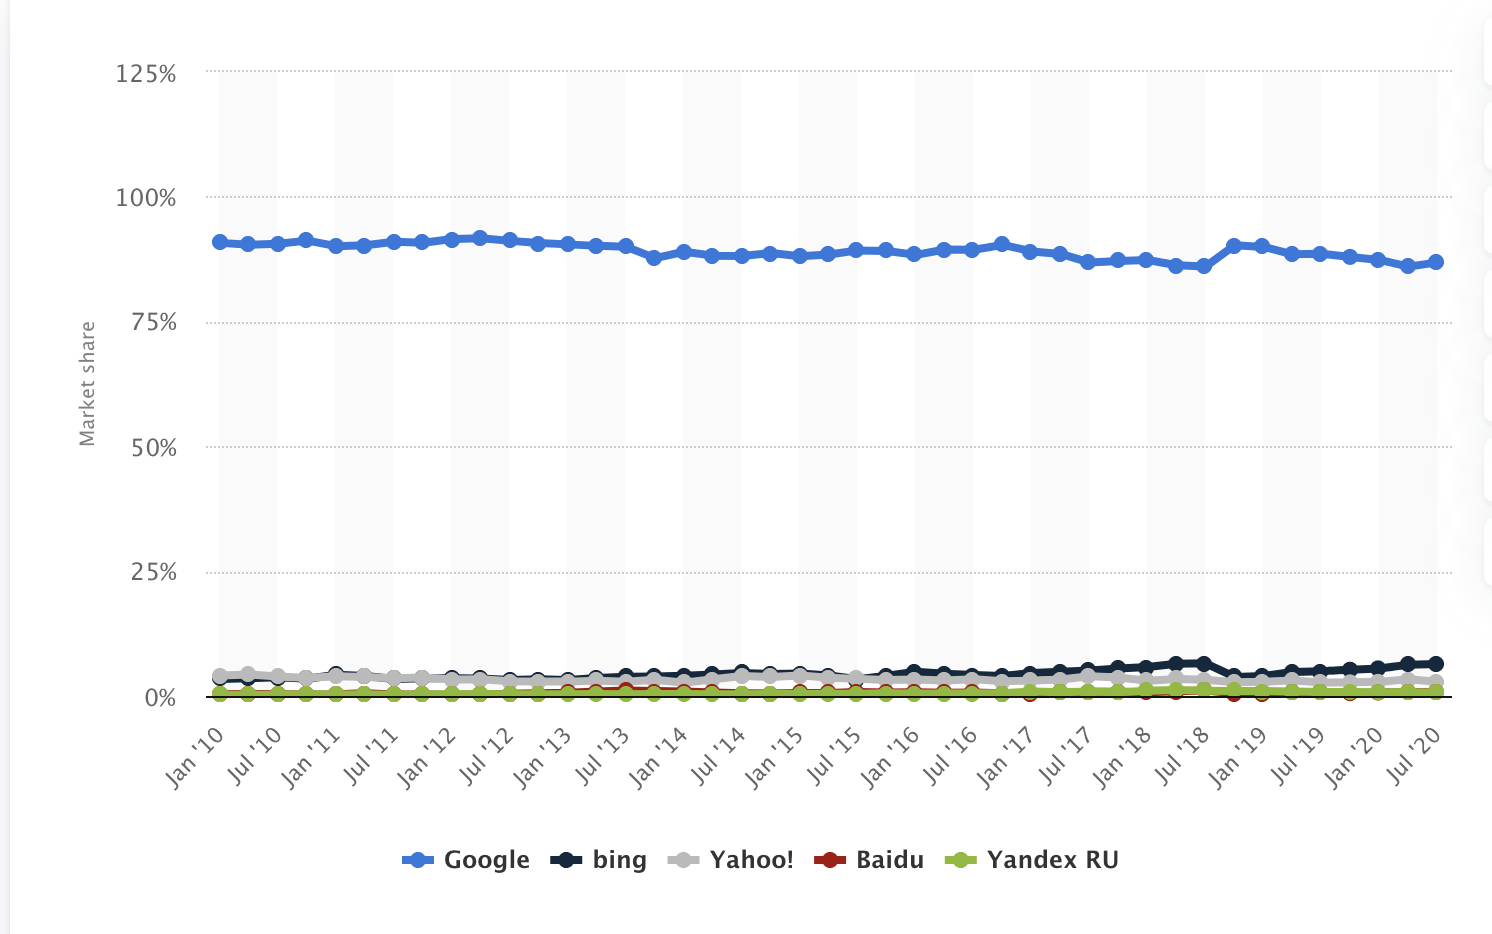 Search Market Share of major search engine